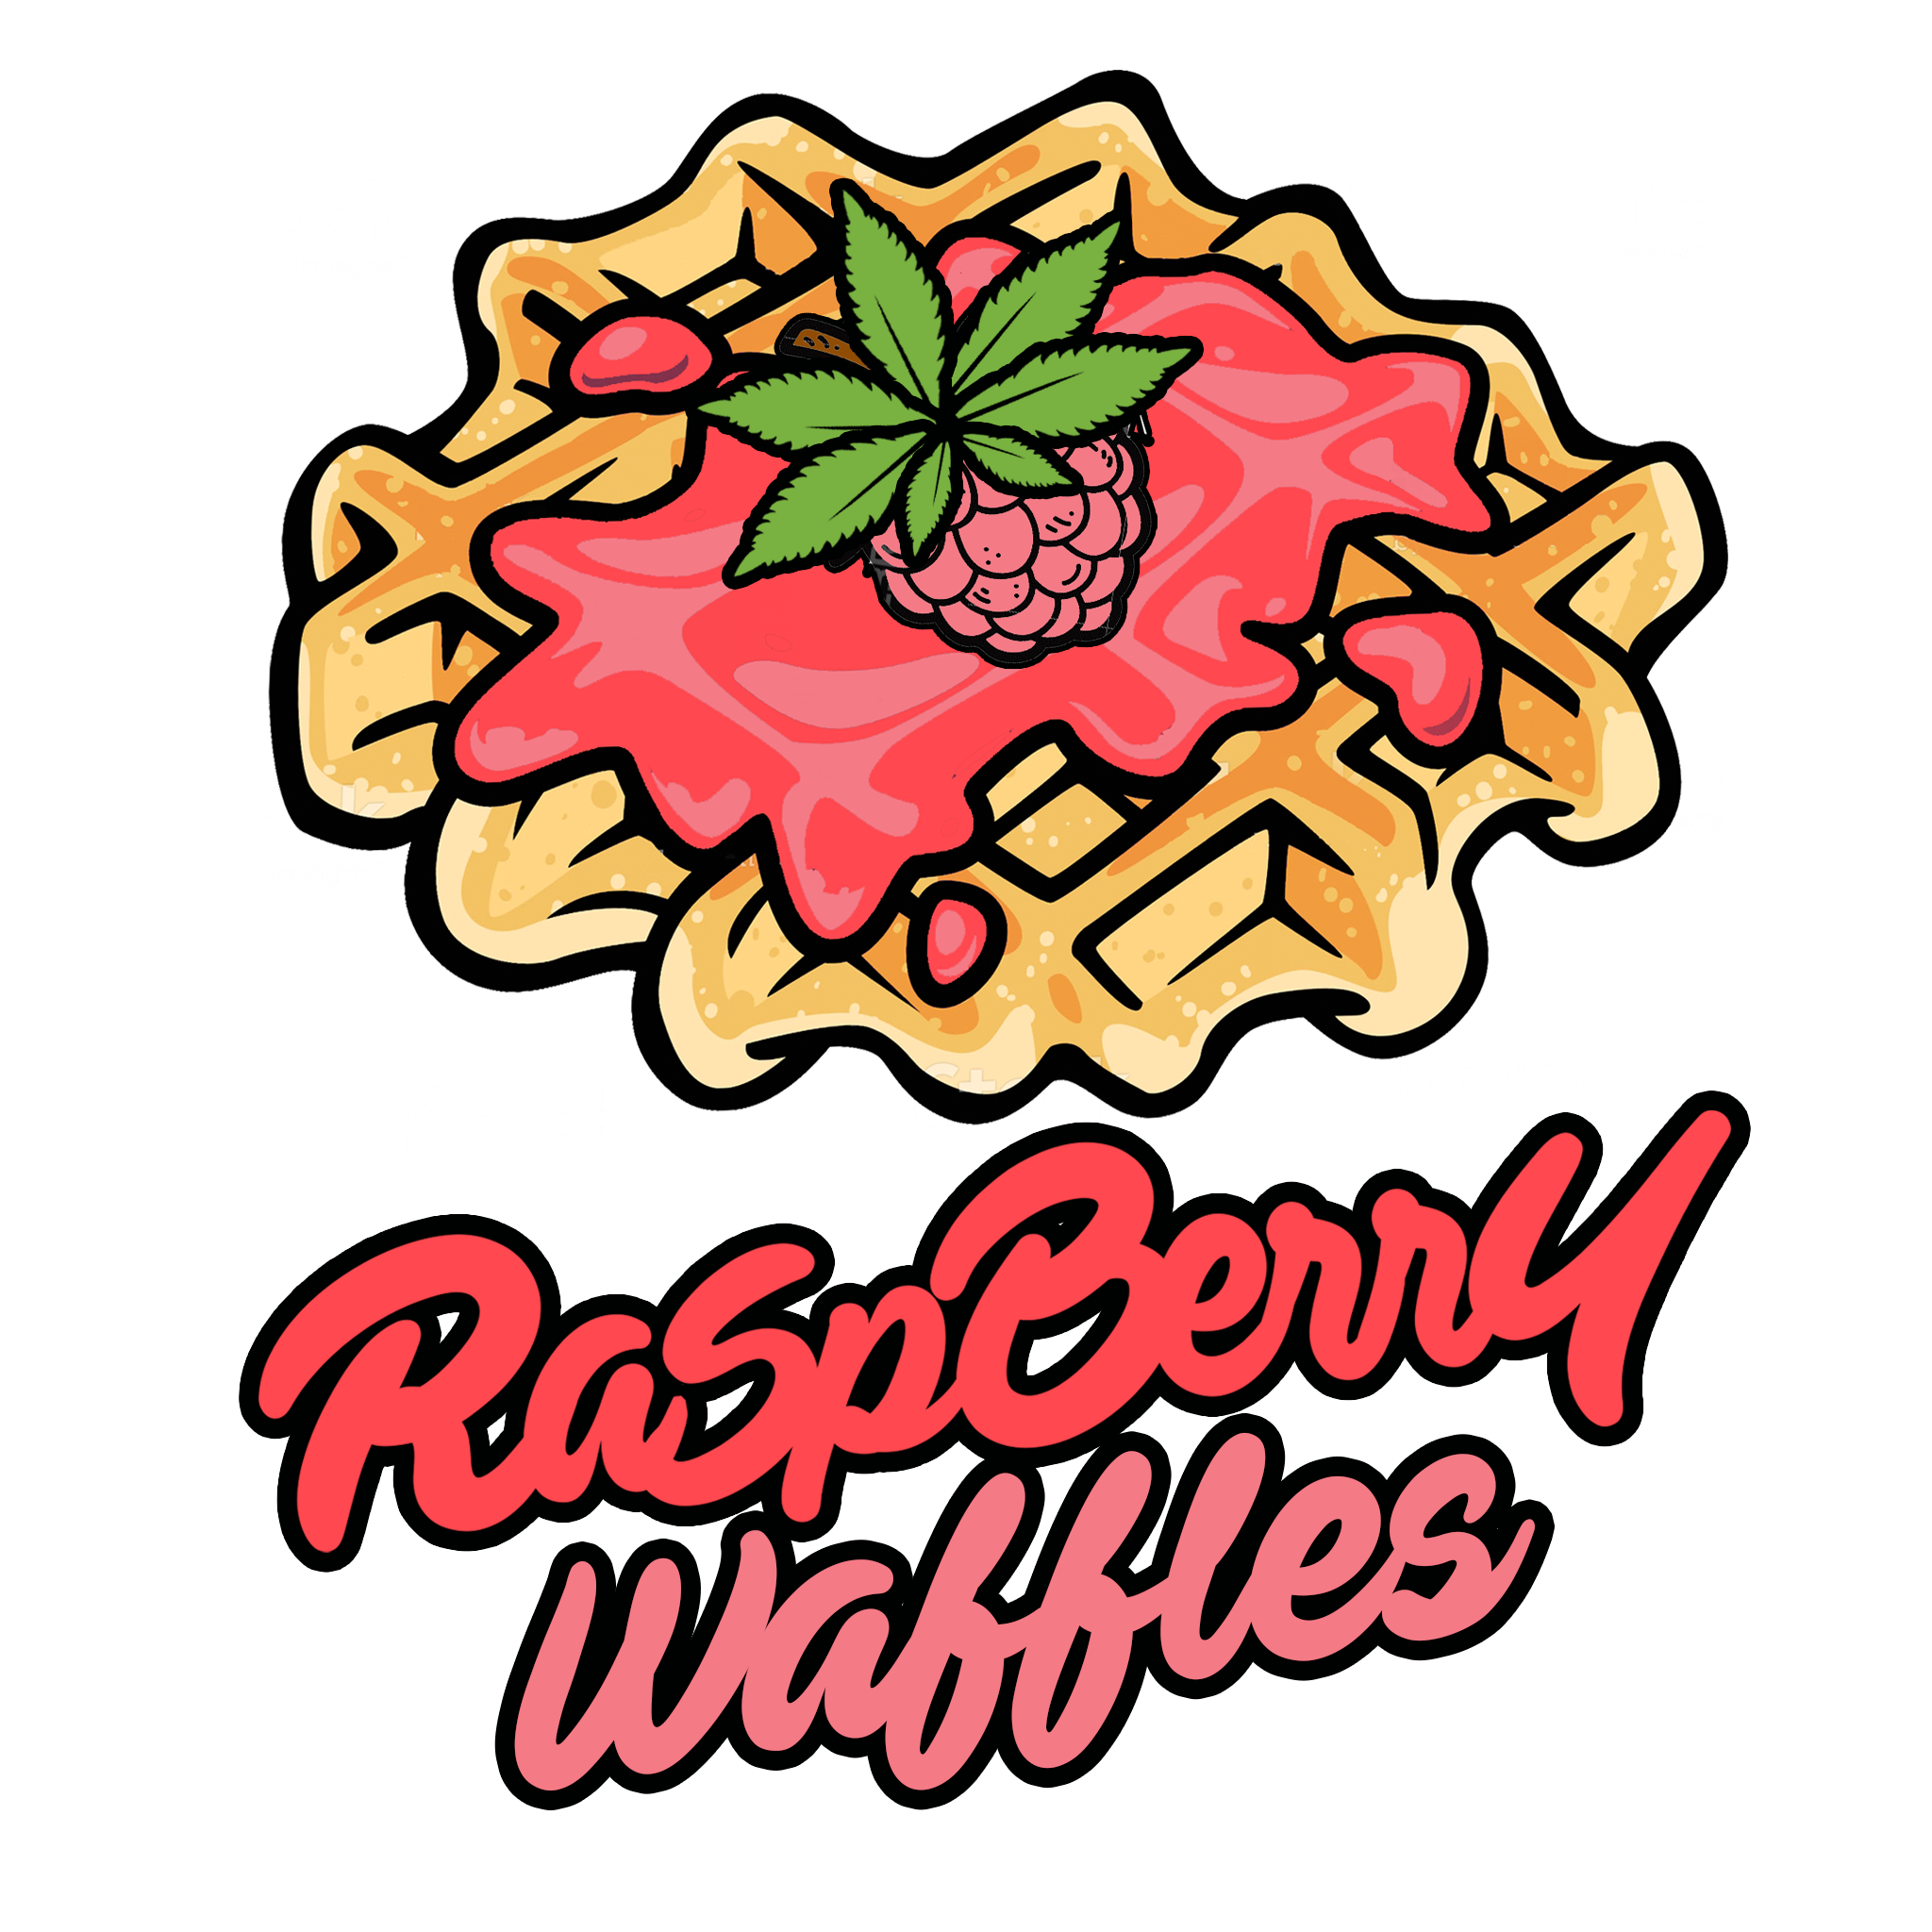 Medicinal cannabis seeds simply. Waffle clipart wafle